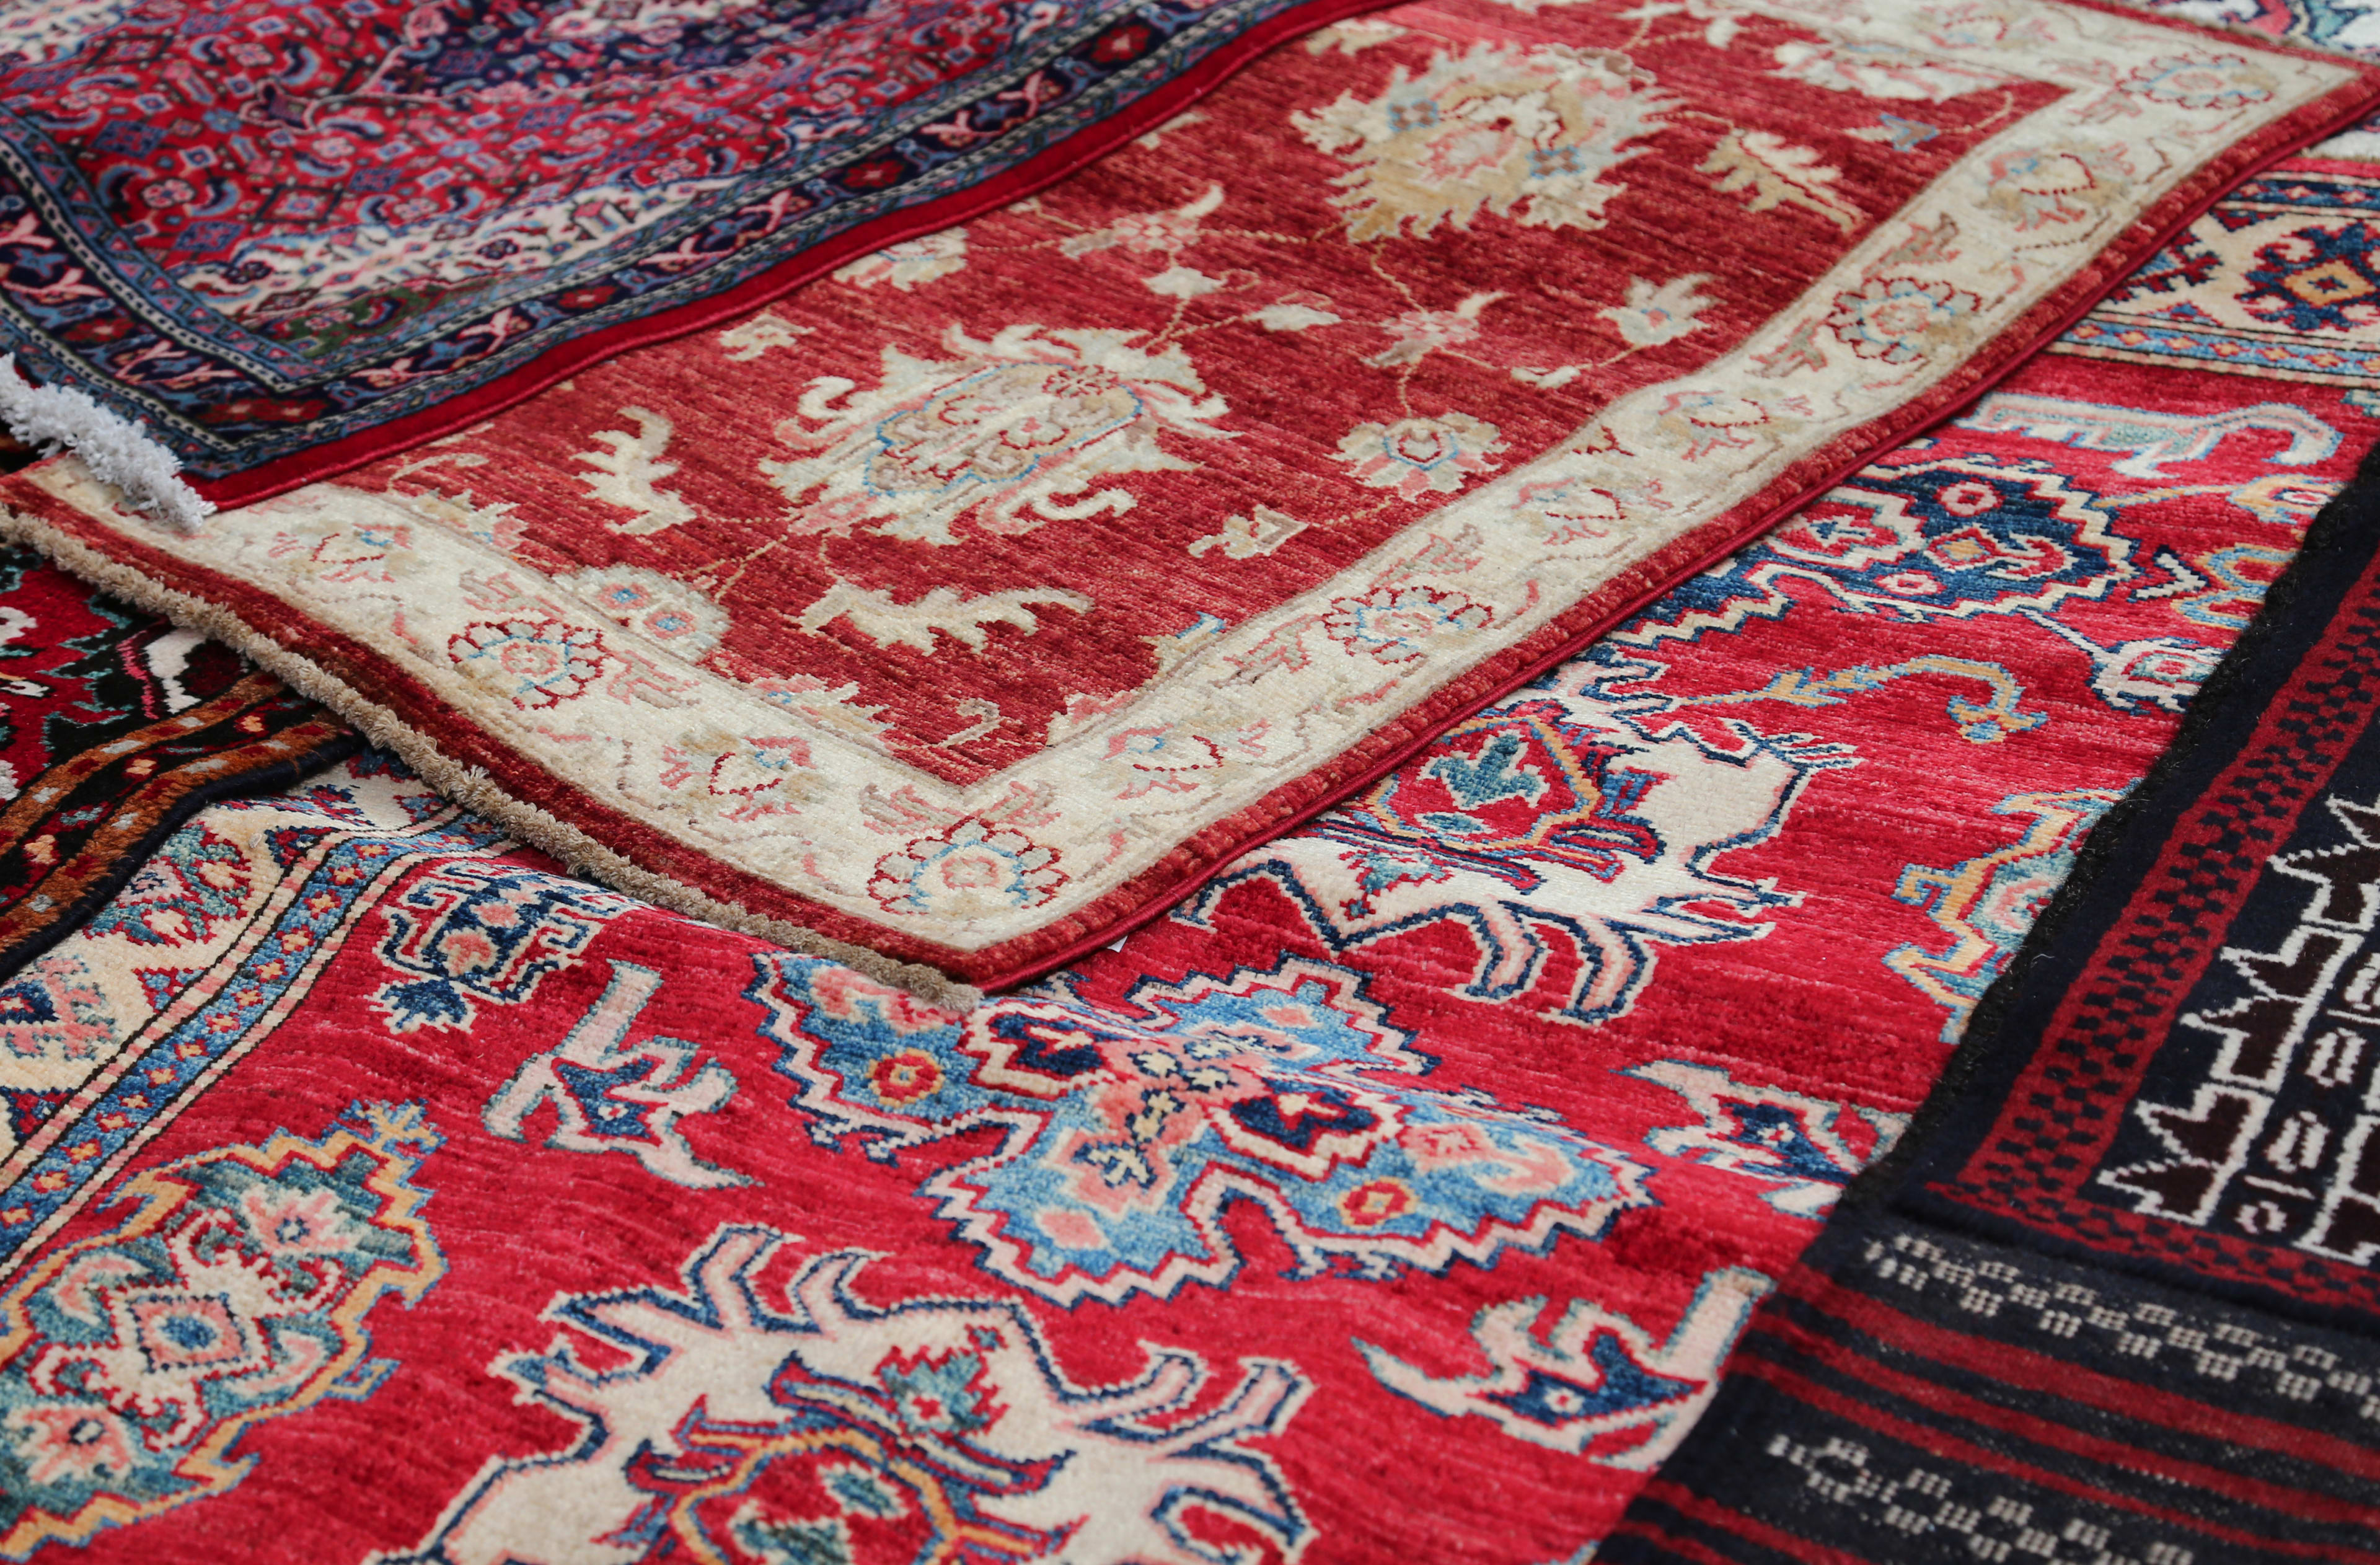 Asian-rugs-for-sale-in-the-shop-of-fabrics-531645581_4700x3090